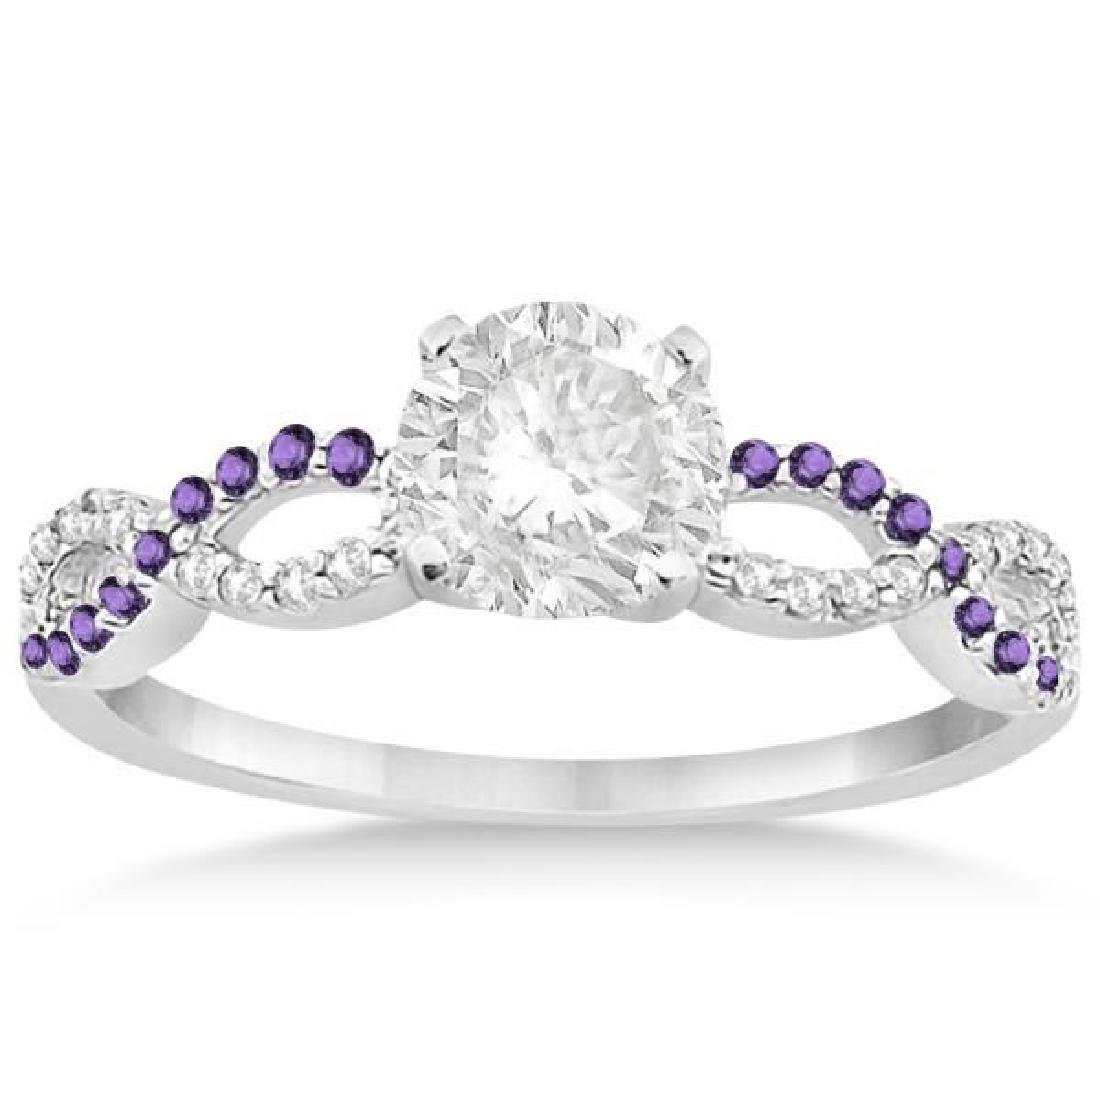 Infinity Diamond and Amethyst Engagement Ring in 14k Wh